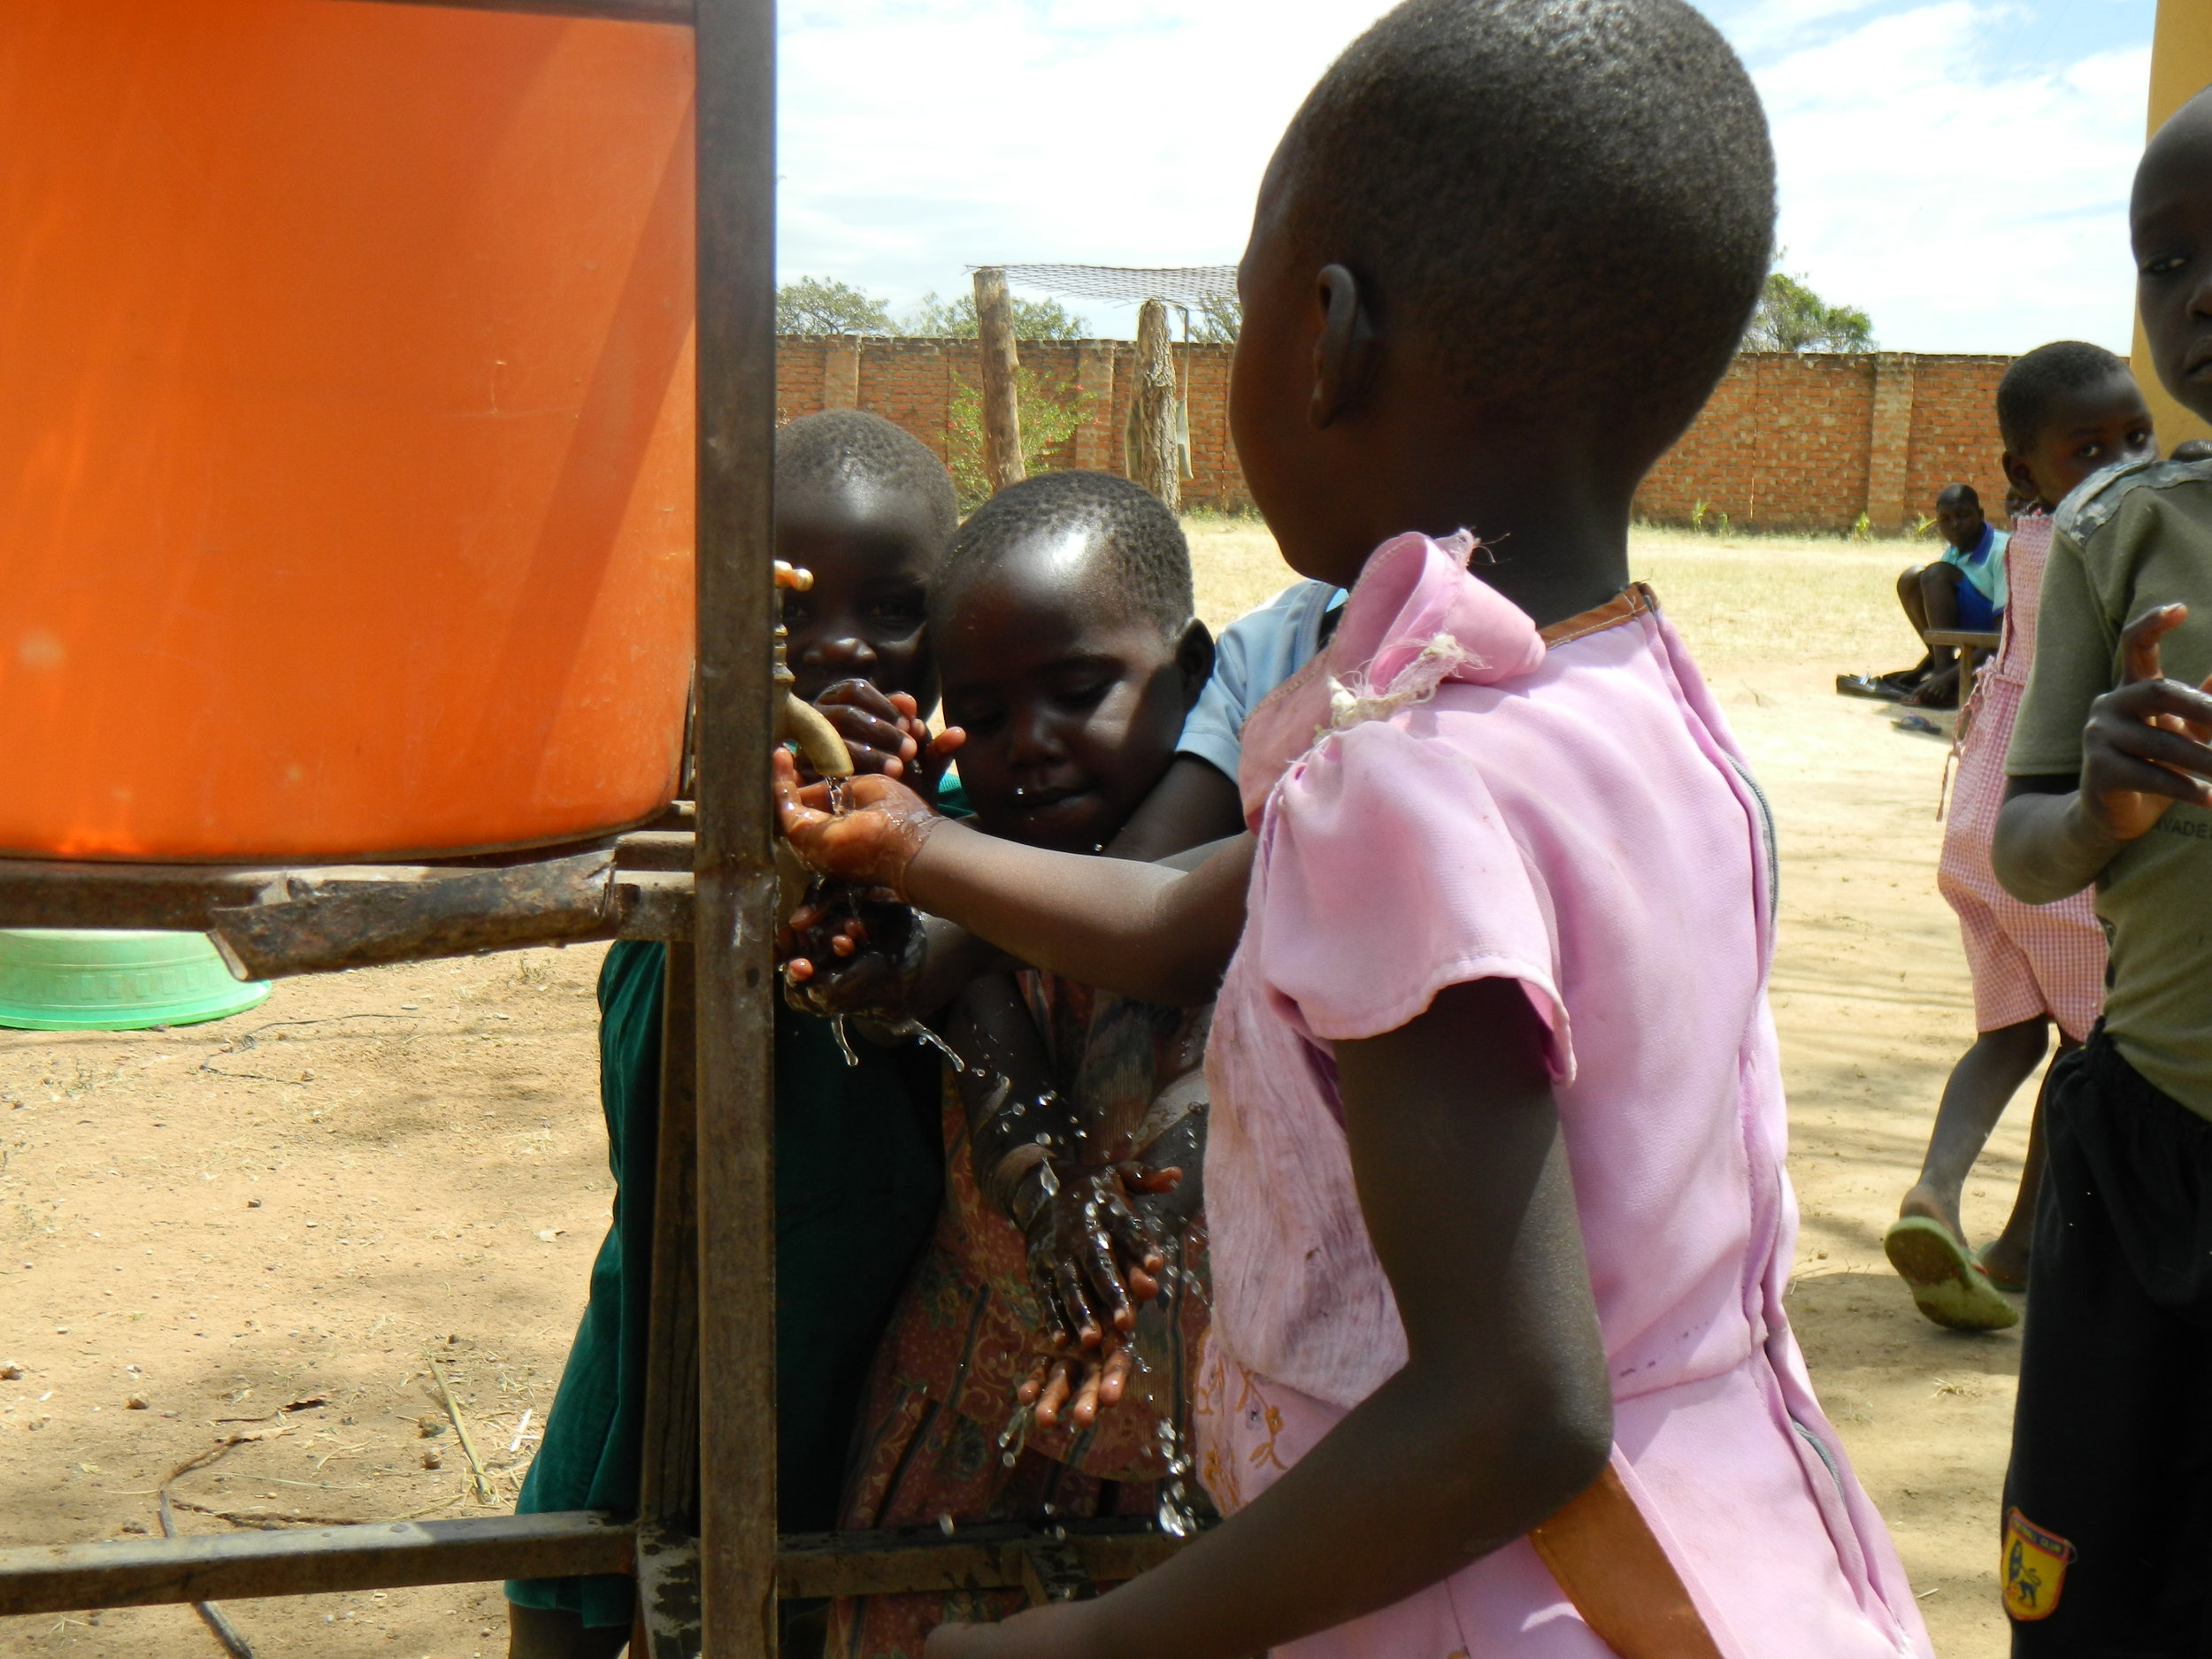 The kids in Uganda washing their hands before lunch